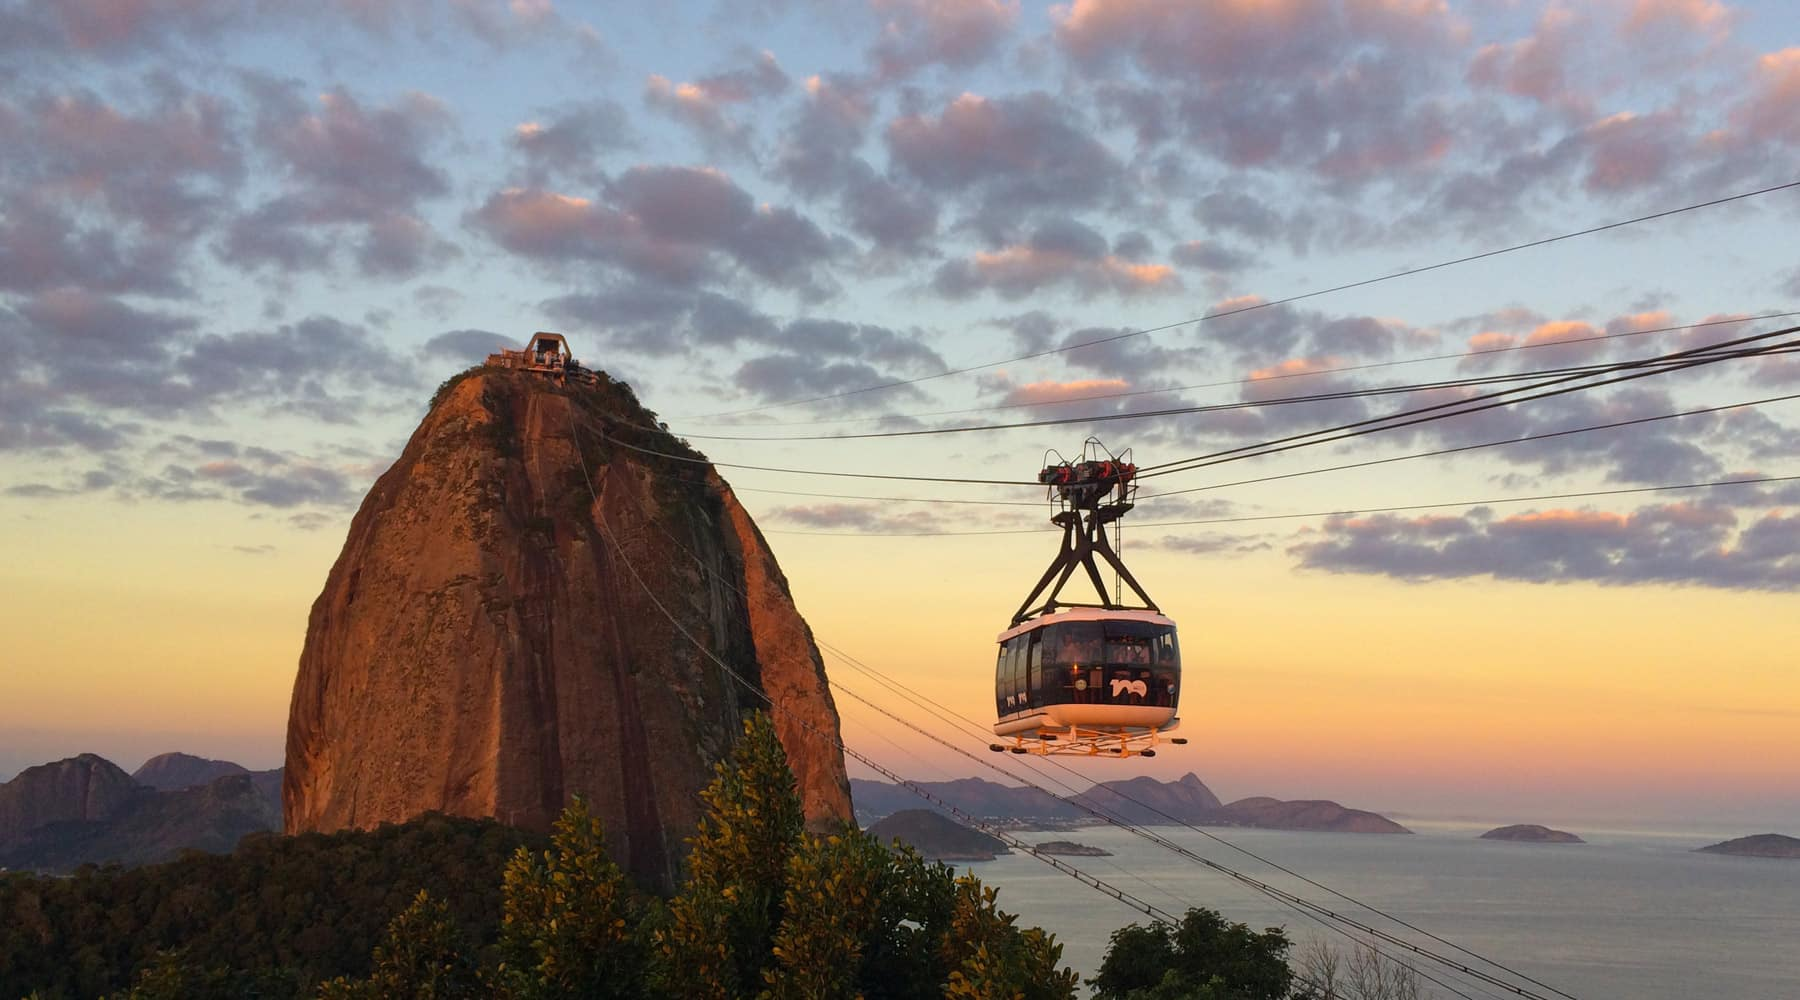 Sugarloaf Mountain – One of the Most Iconic Sites in Rio